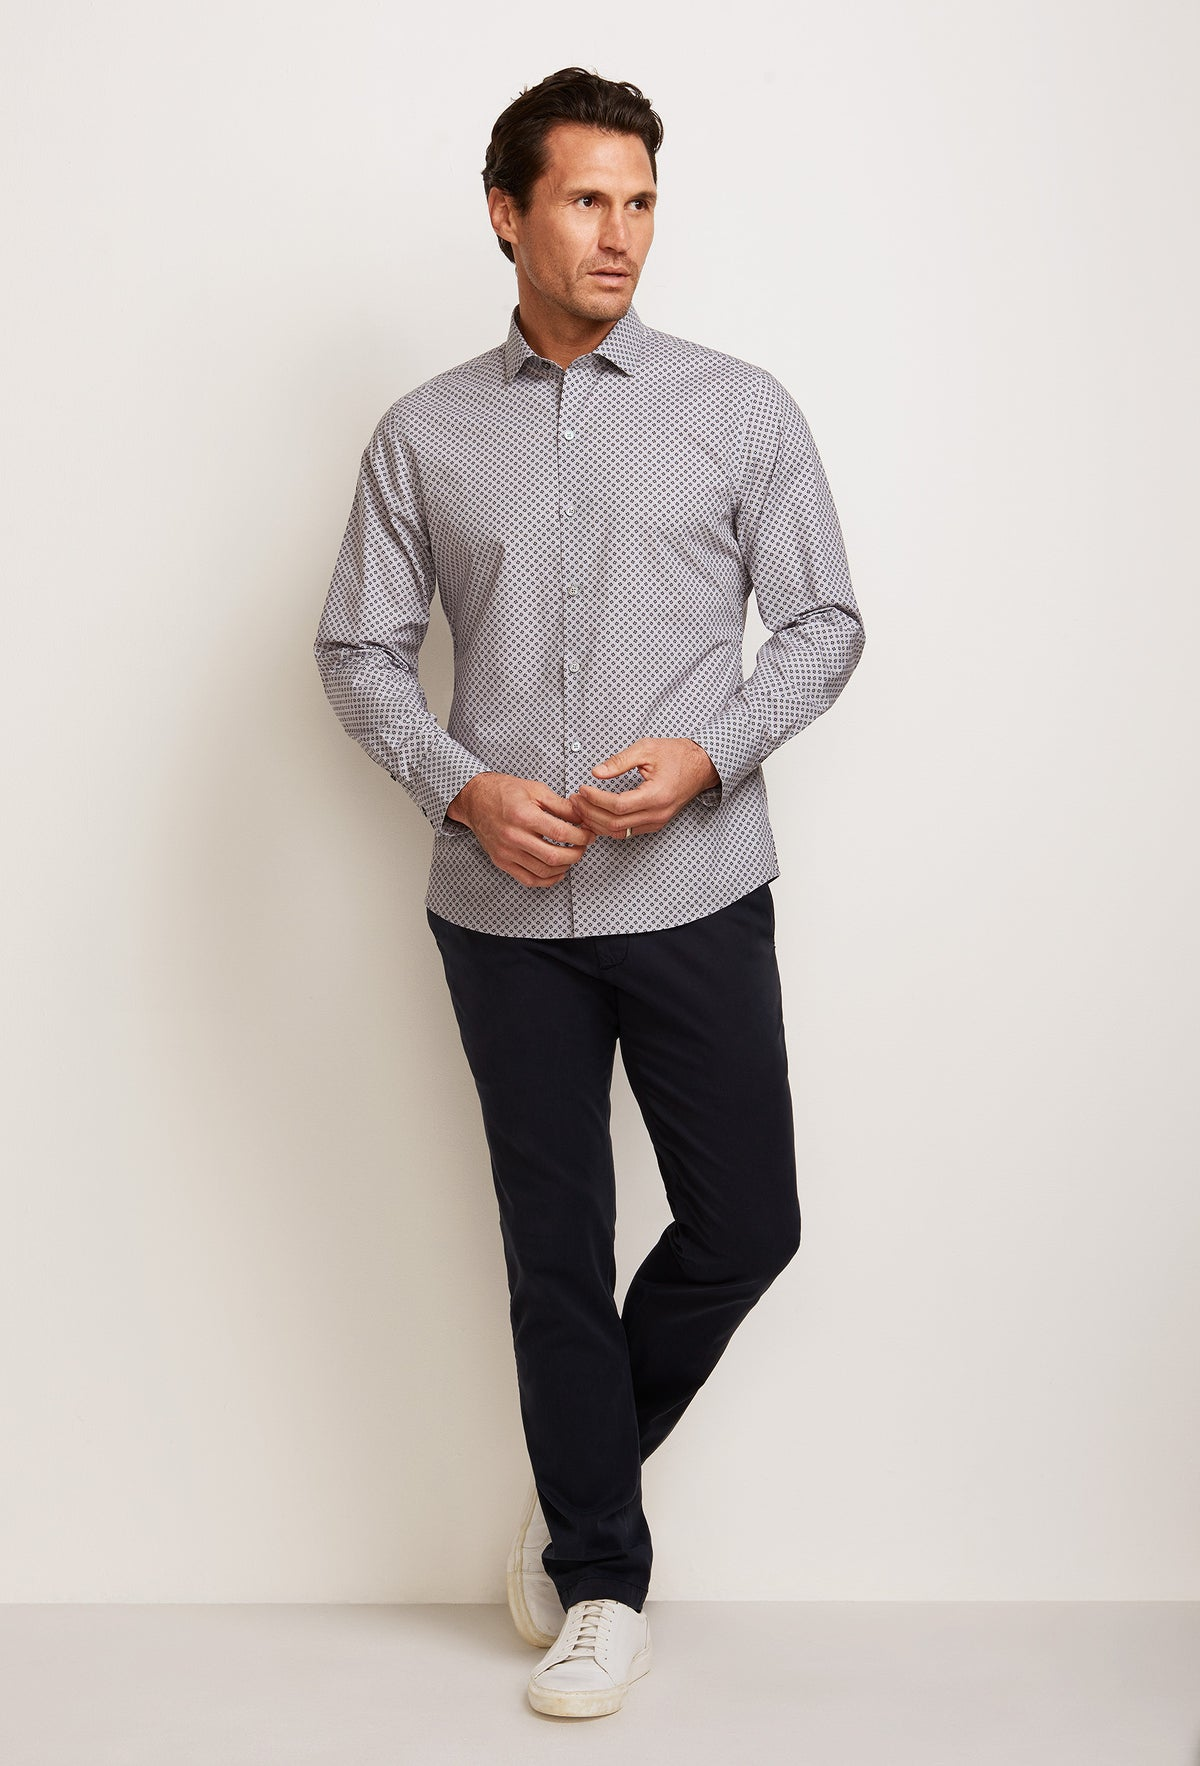 ZACHARY-PRELL-Wyatt-ShirtsModern-Menswear-New-Dress-Code